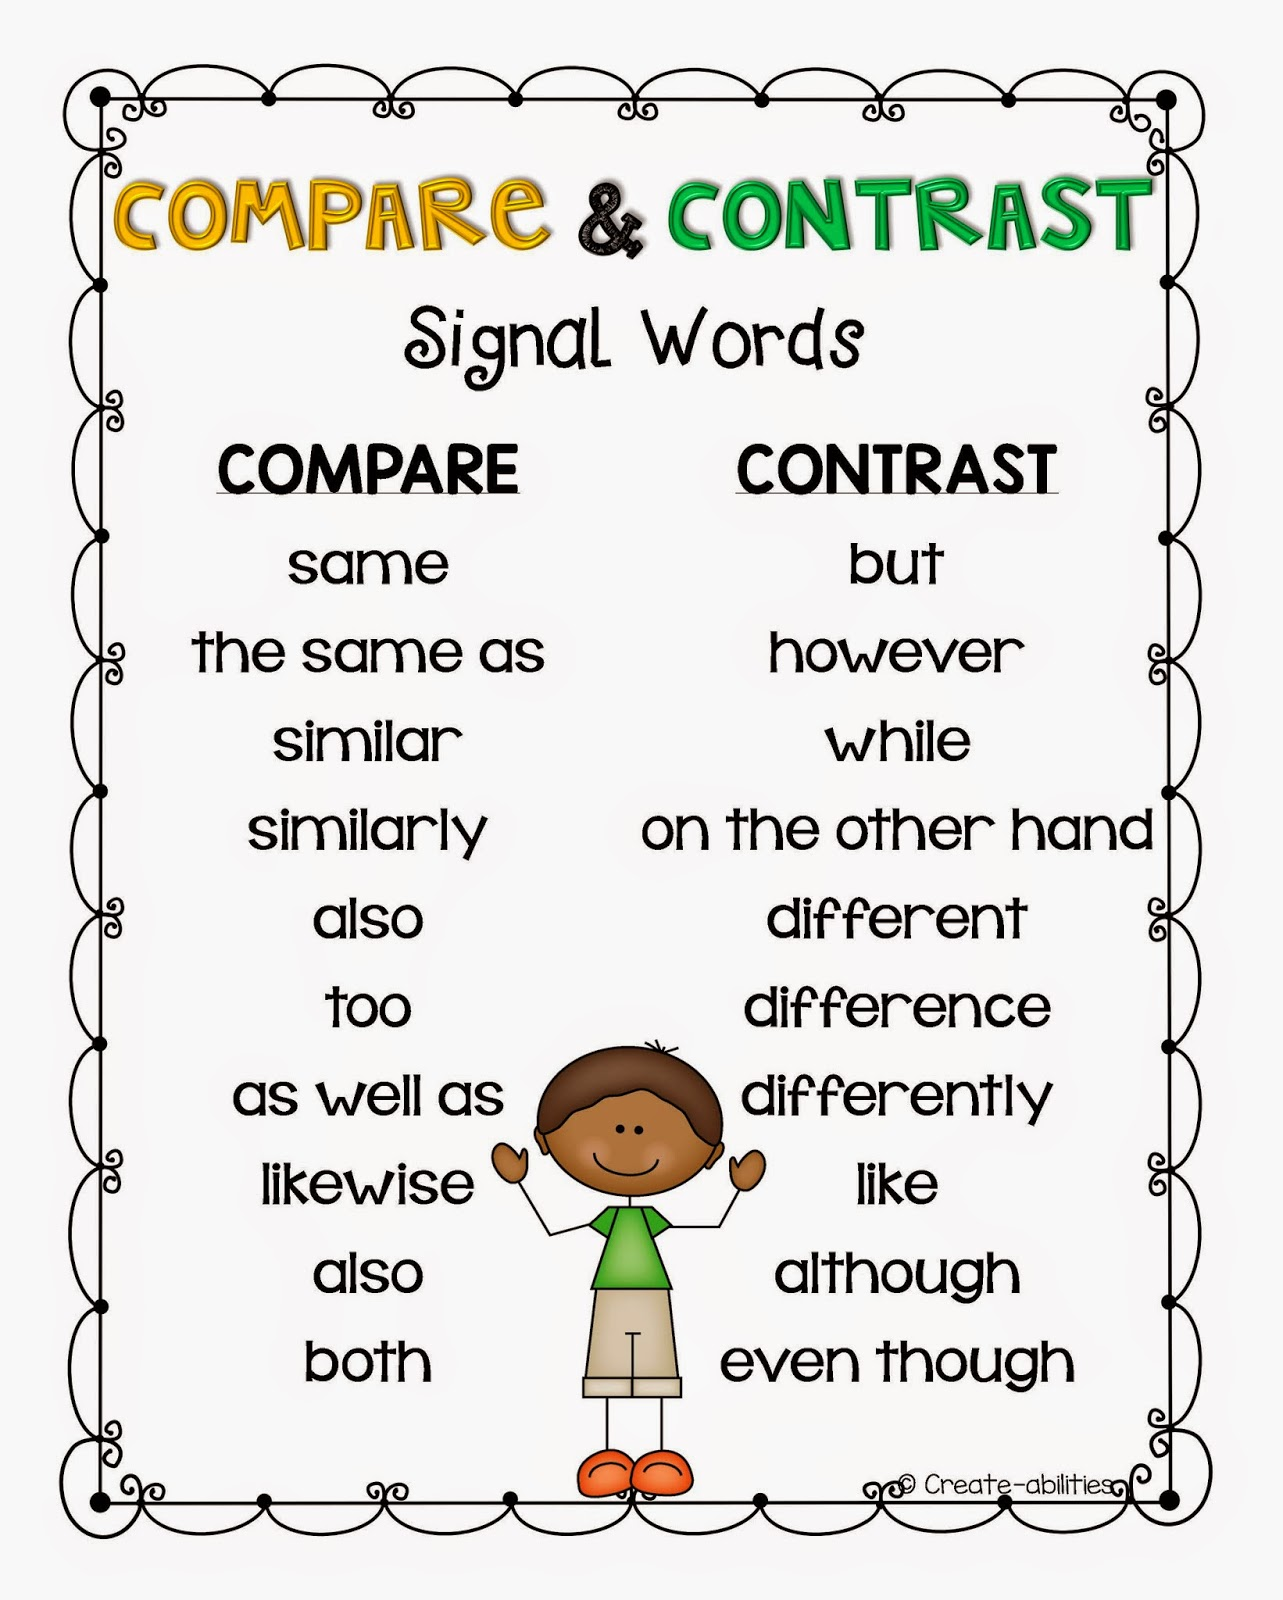 Comparing and contrasting?